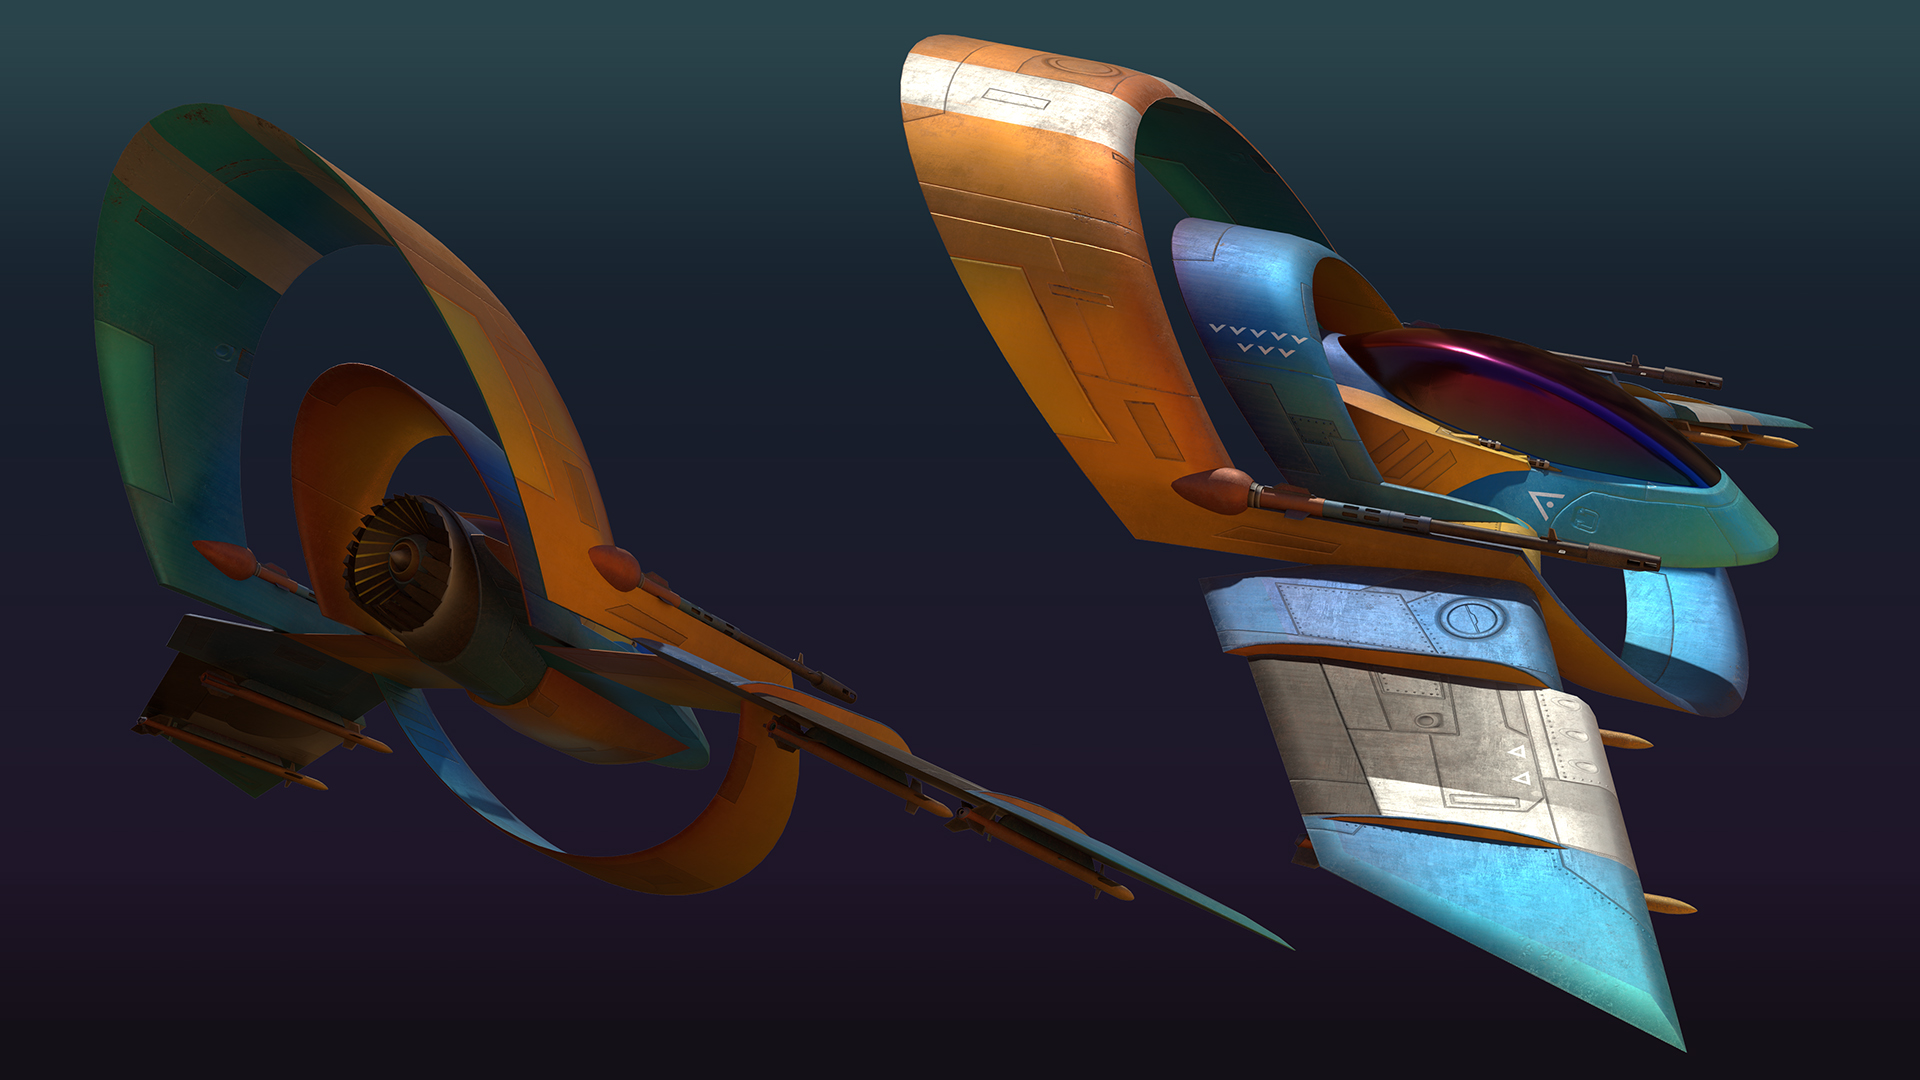 Personal Project - Original aircraft concept